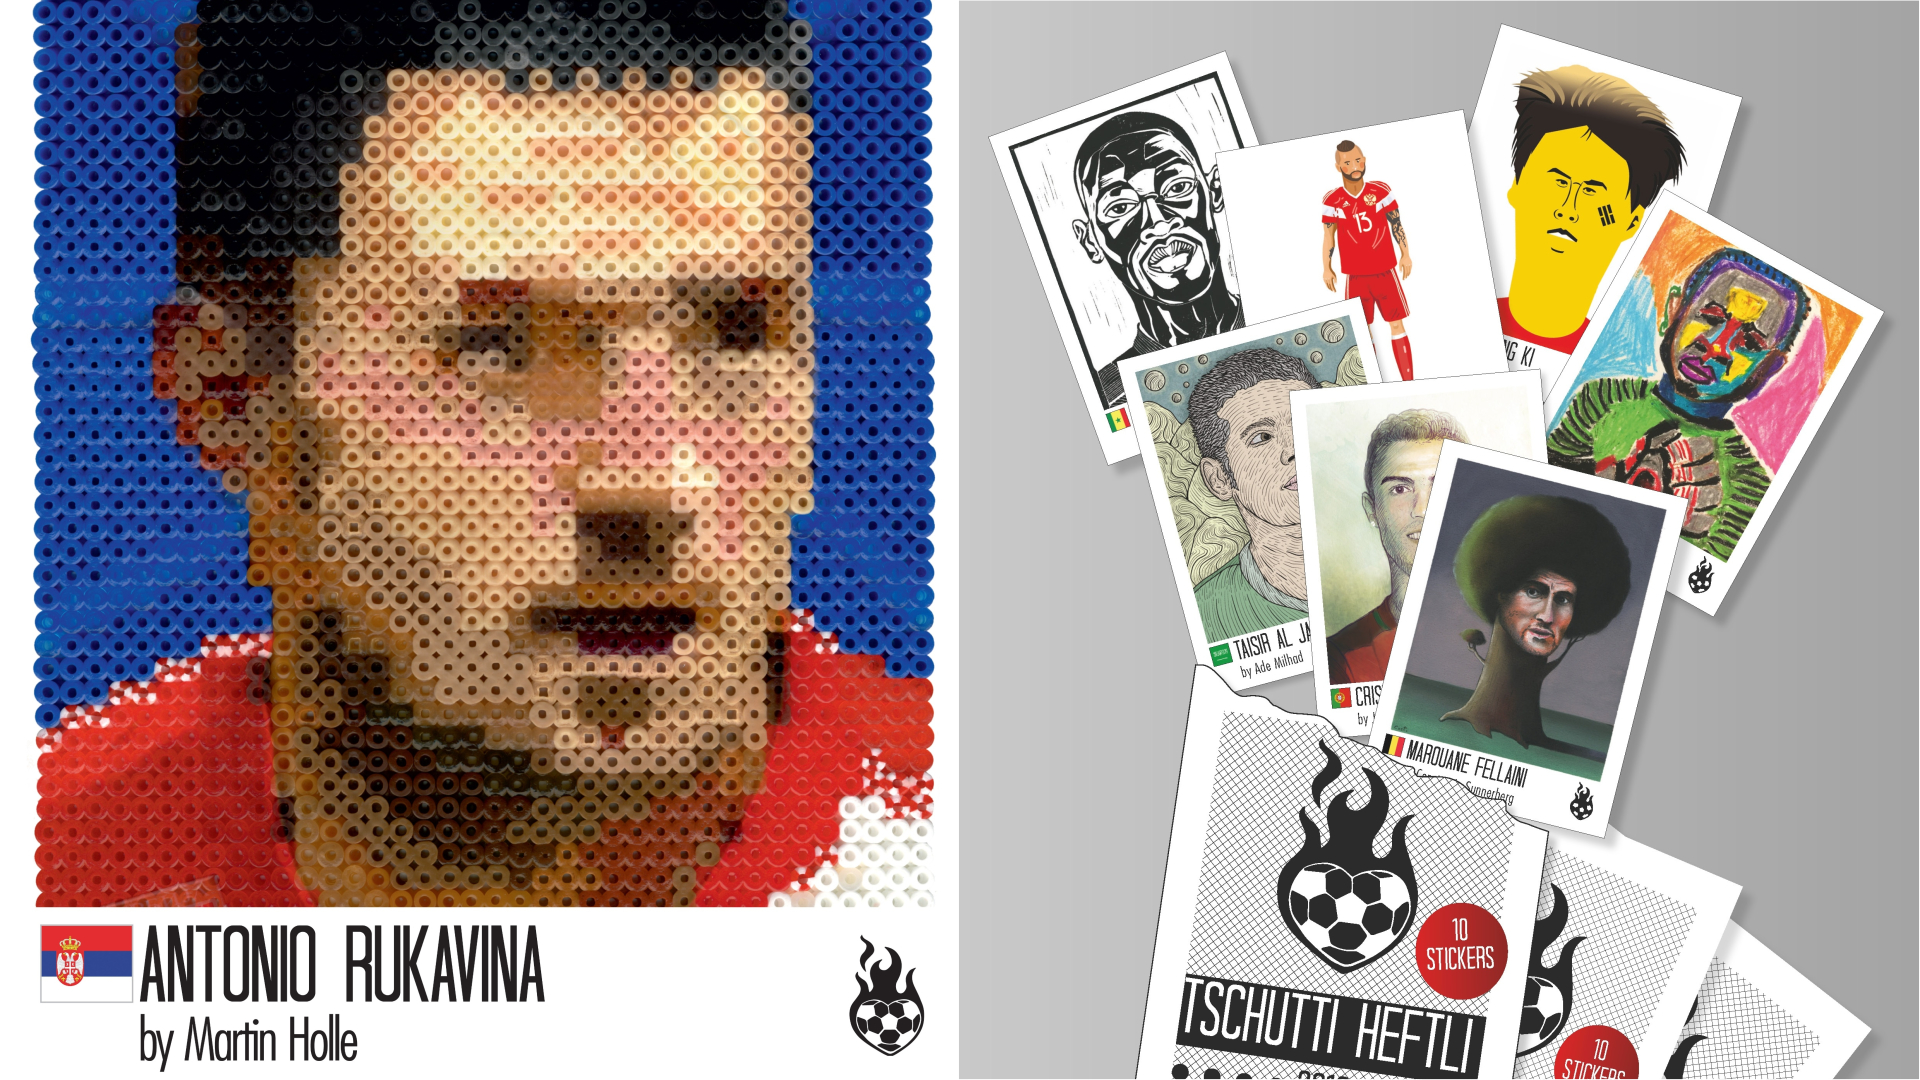 Alternative World Cup stickers from Tschutti Heftli's album